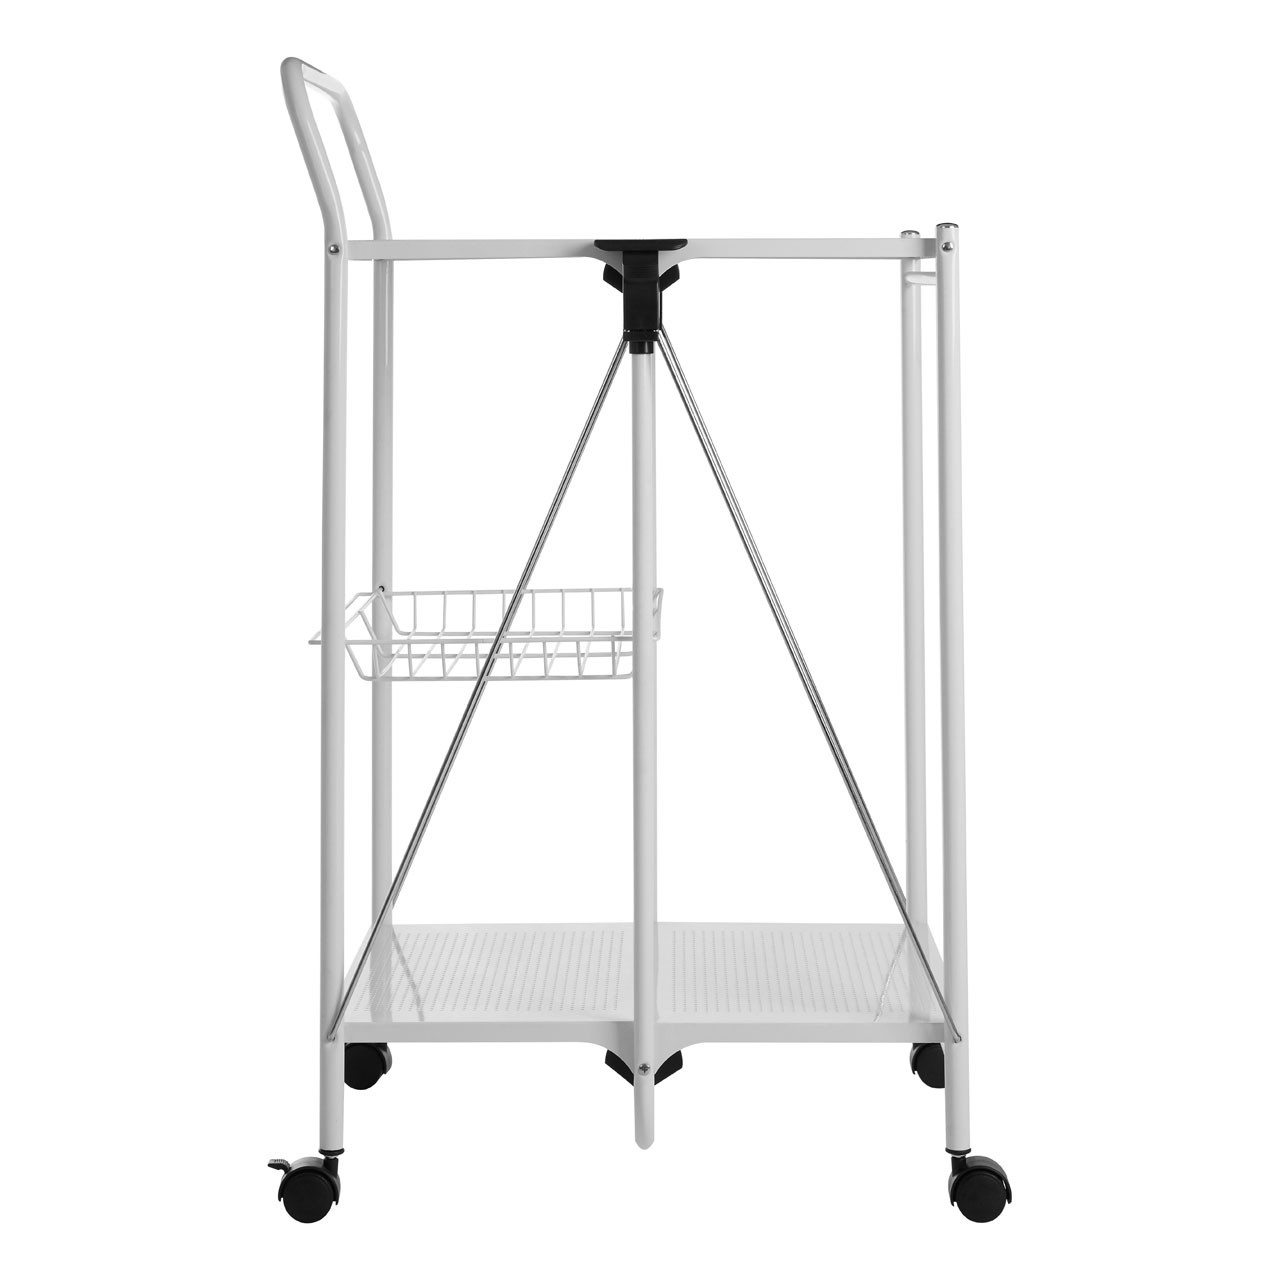 Folding Kitchen Trolley - Black